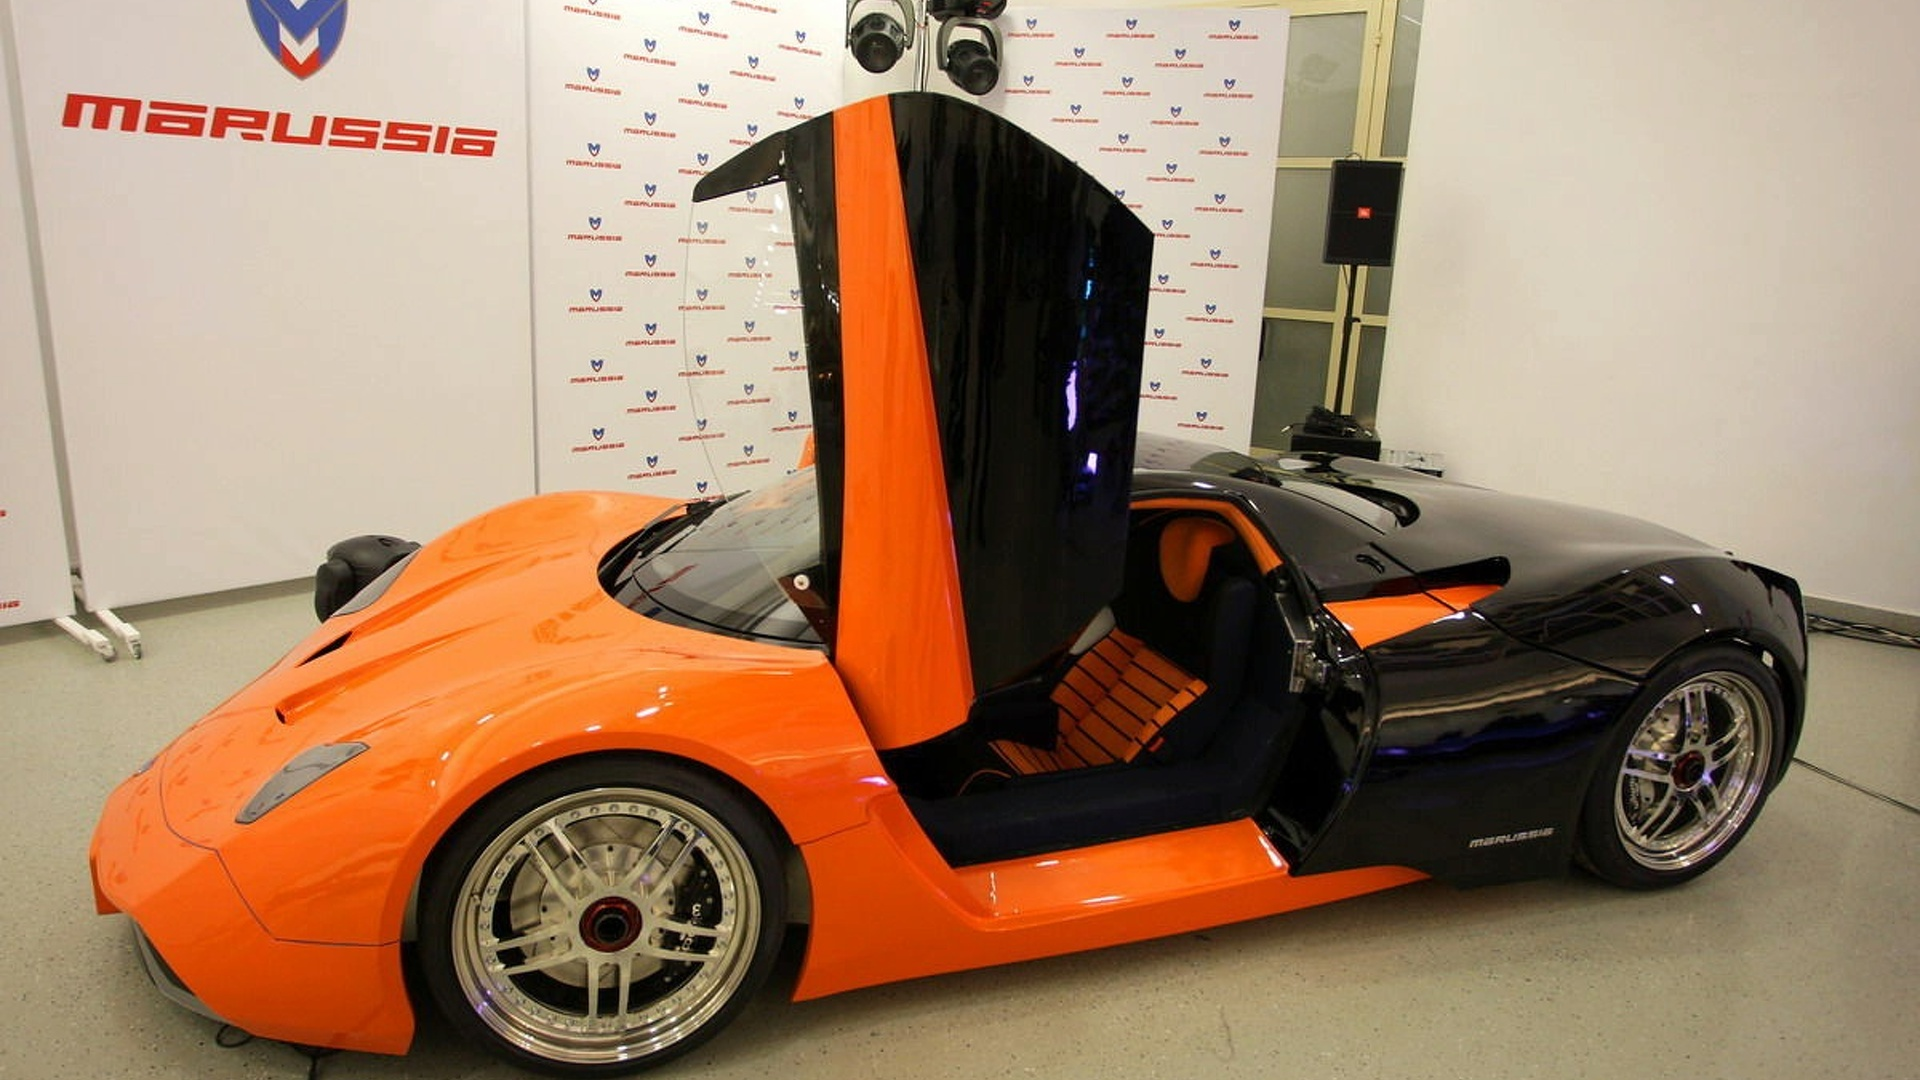 EMM Marussia from Russia Sends its Hybrid Love